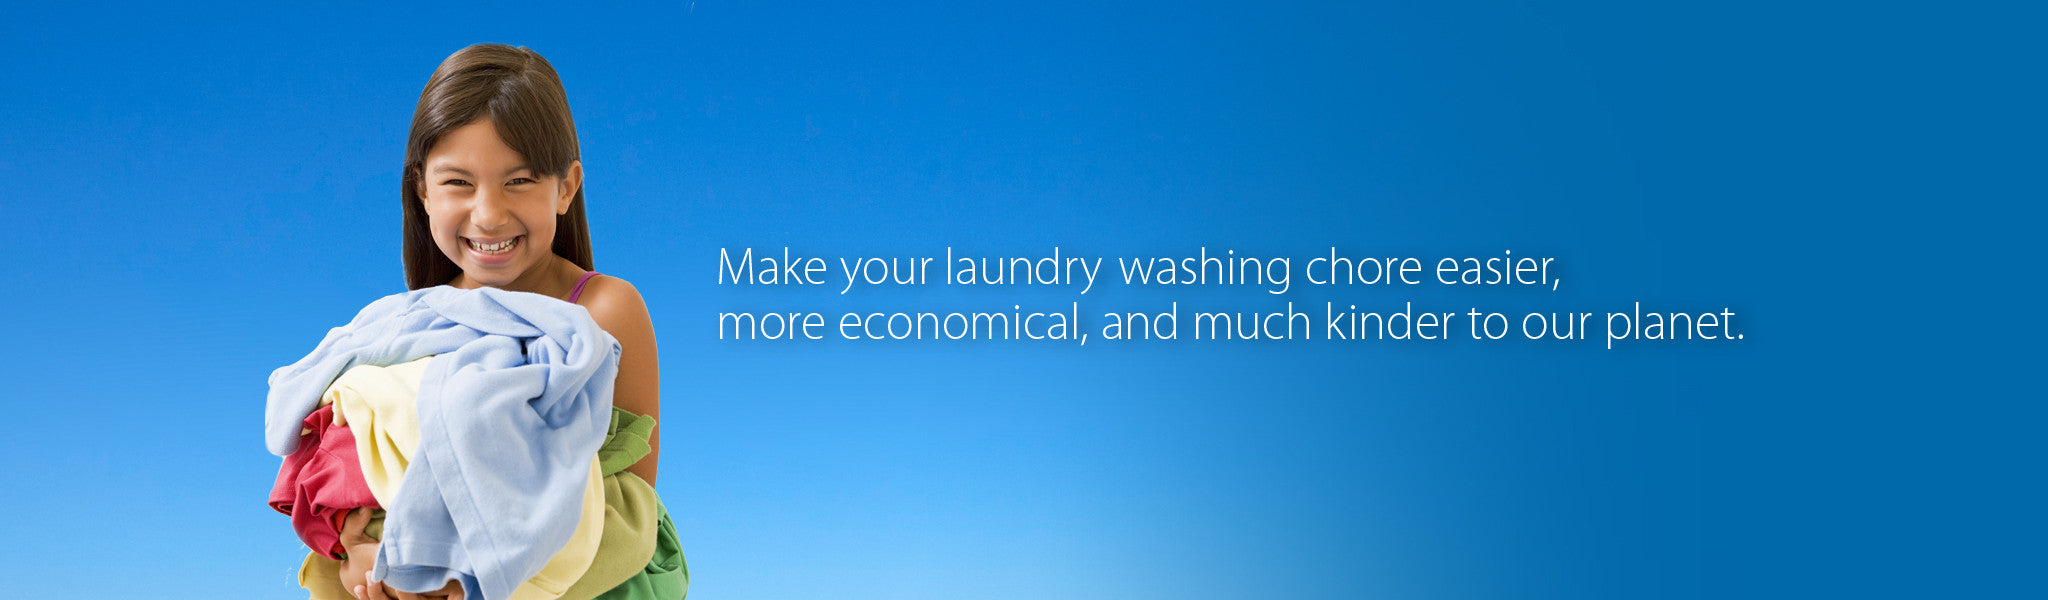 Make your laundry washing chore easier, more economical, and much kinder to our planet.